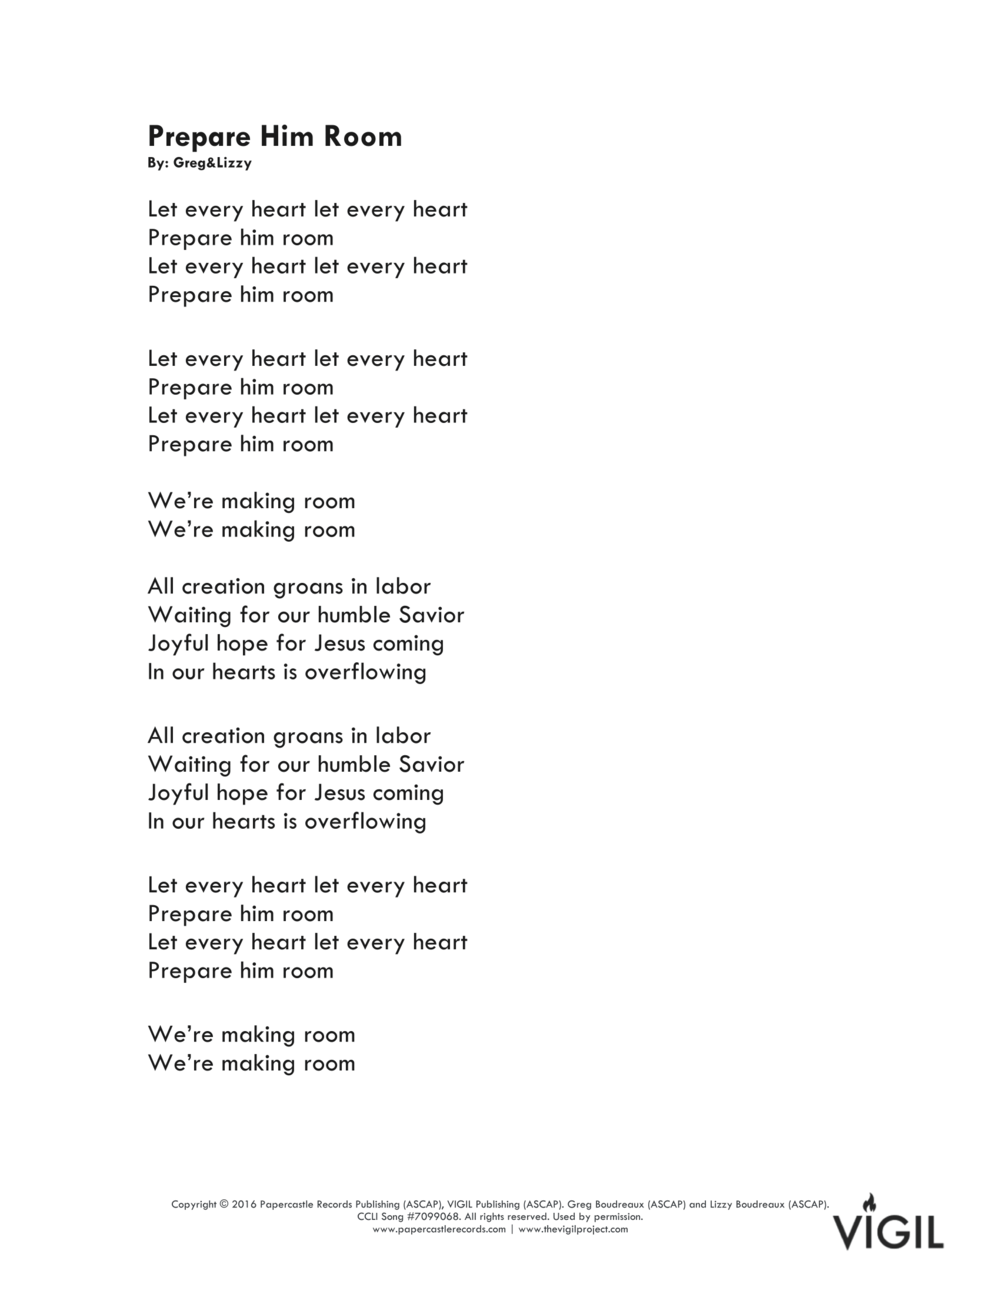 VIGIL S2 - Prepare Him Room (Lyrics)-1.png